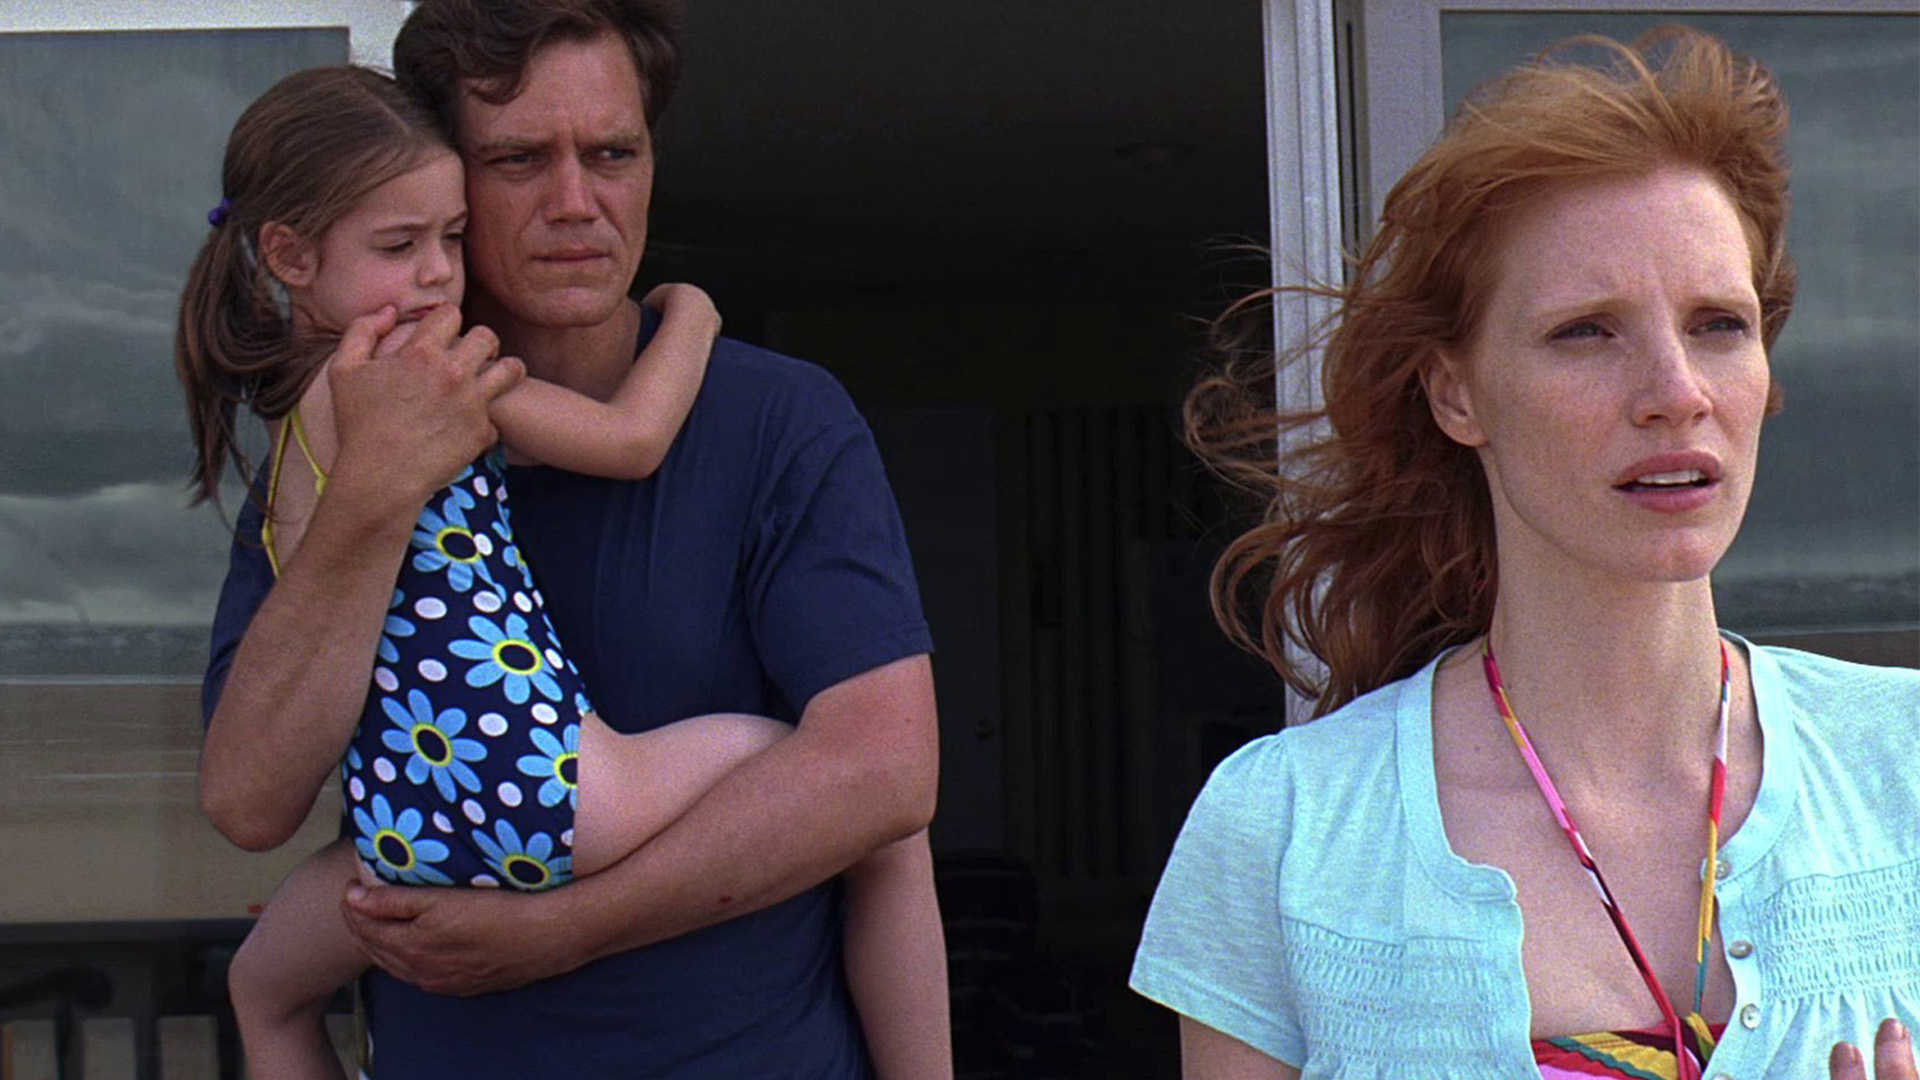 Michael Shannon holding daughter Tova Stewart with wife Jessica Chastain in Take Shelter (2011)